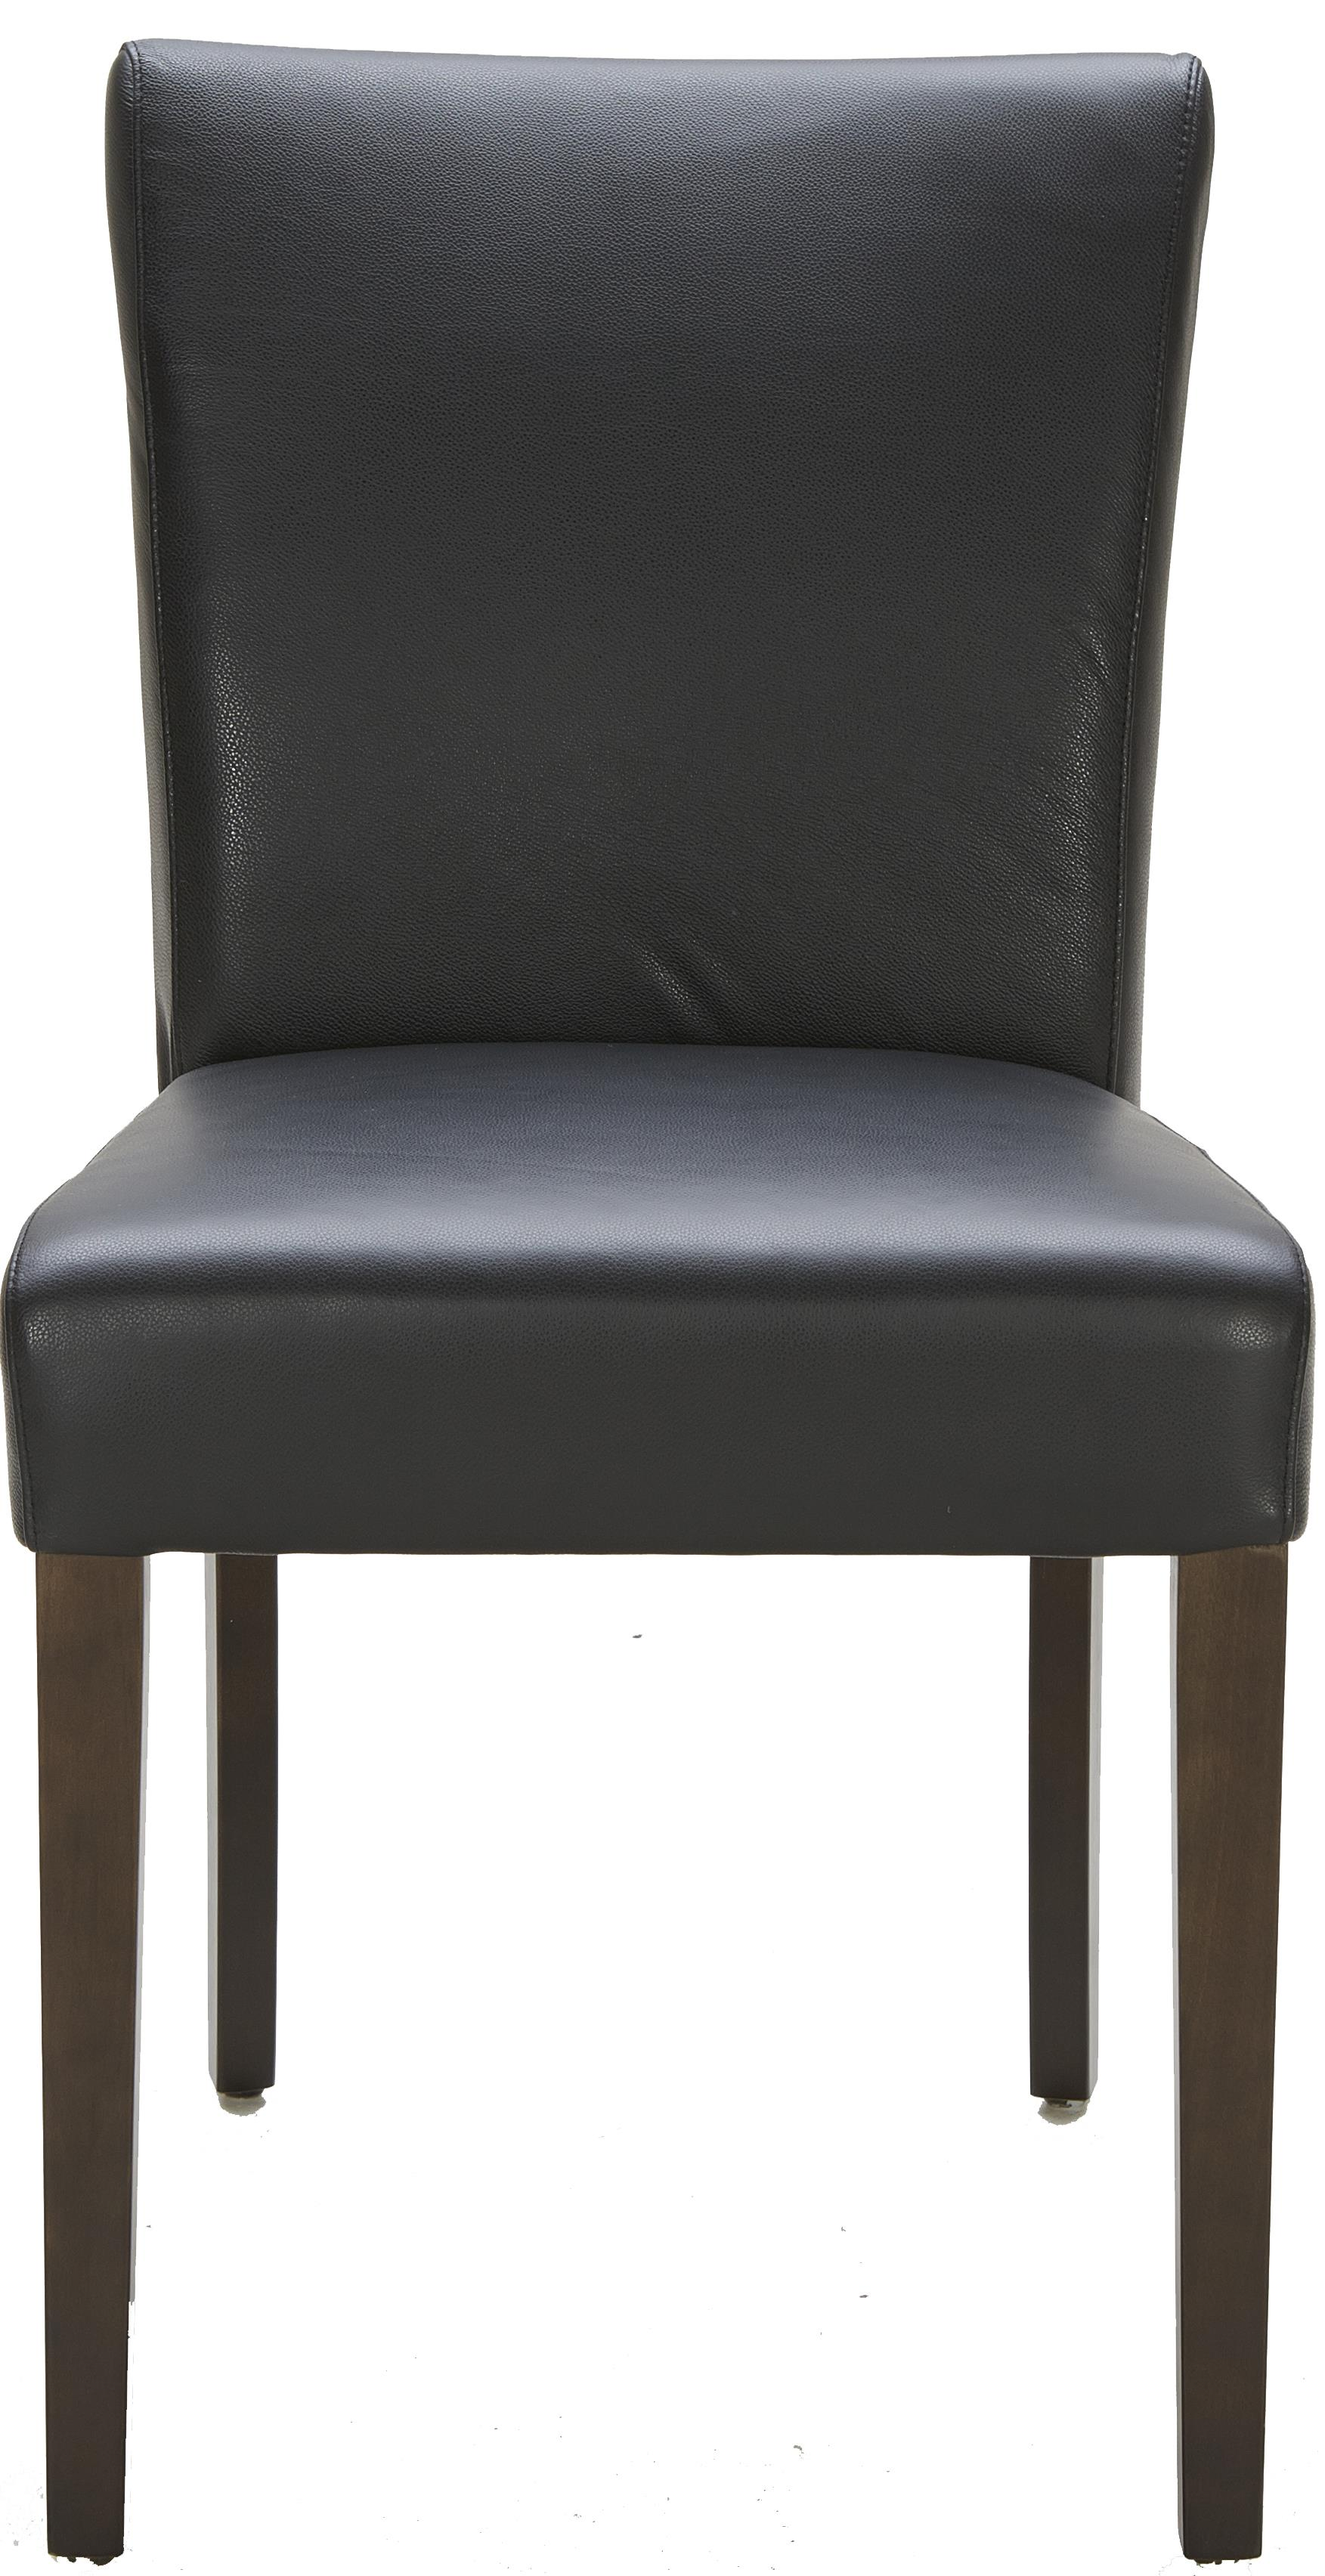 Urban Evolution Urban Dining Chairs Black Dining Side Chair - Item Number: Y-326-M5509